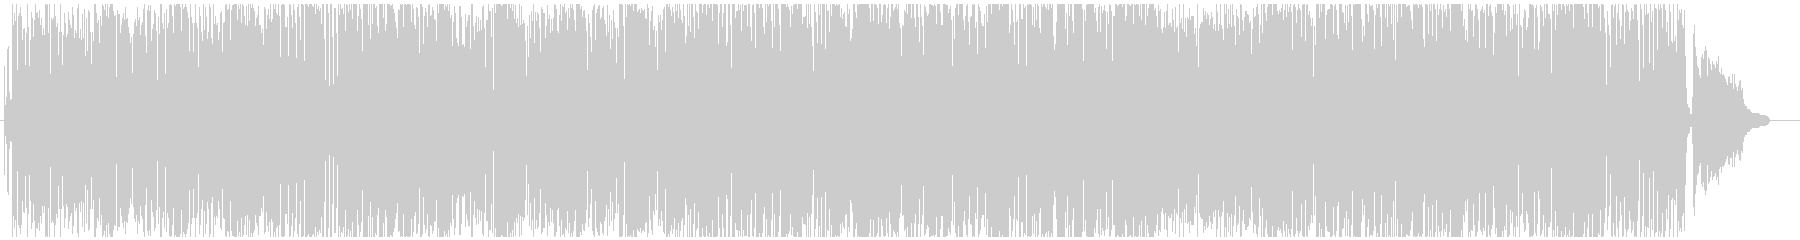 Fashionable and retro BGM of trumpet's unreproduced waveform